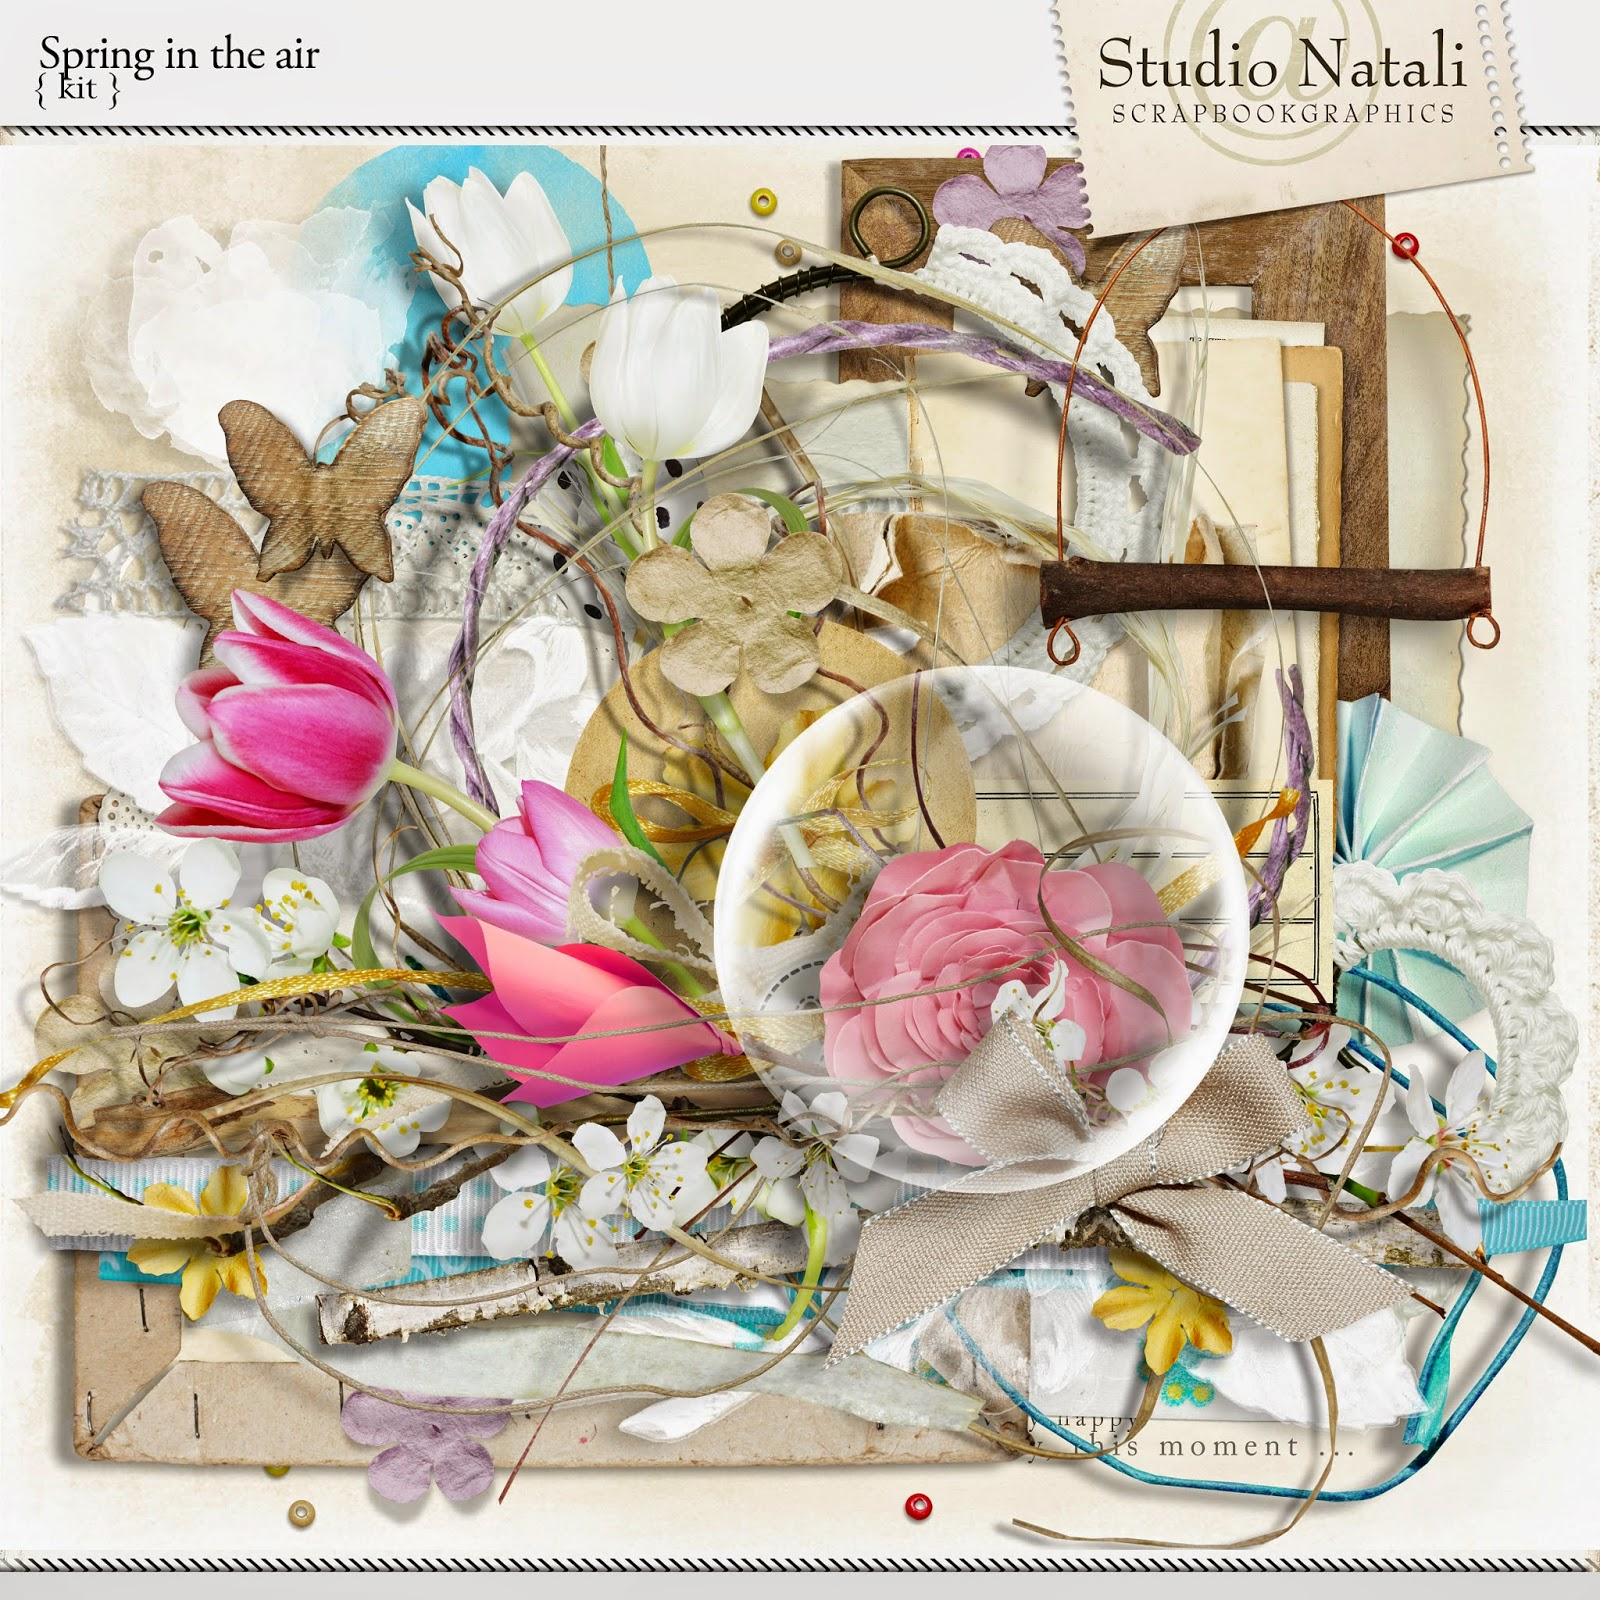 http://shop.scrapbookgraphics.com/Spring-in-the-Air.html